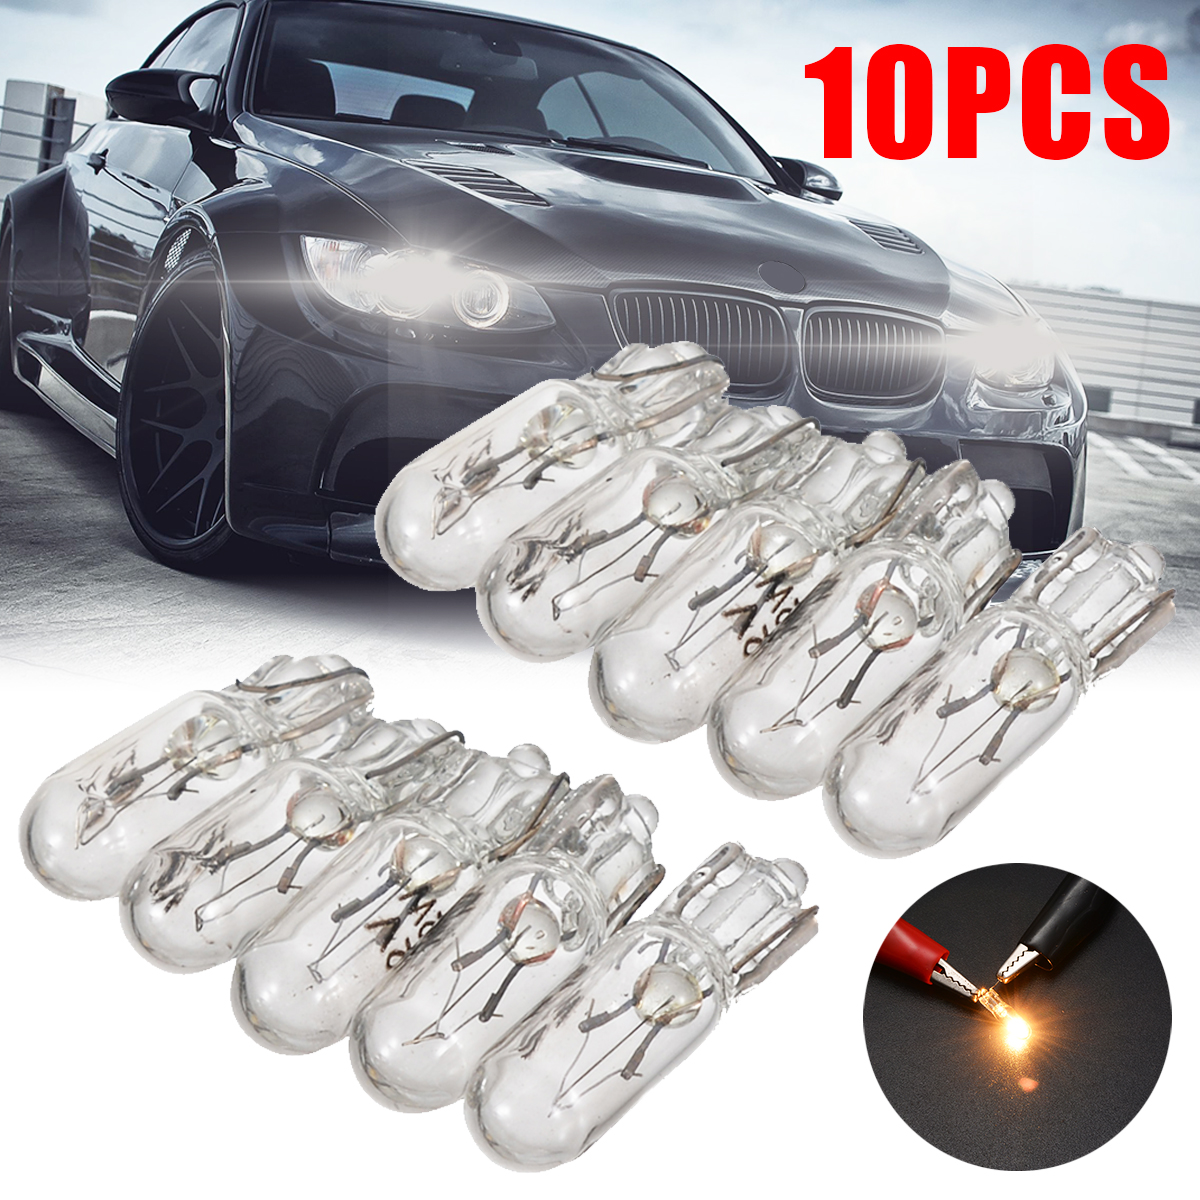 New Arrival Light Bulb 10pcs <font><b>T5</b></font> 286 Car Wedge Instrument Panel Brake Light Glass Car Wedge Dashboard Lights image